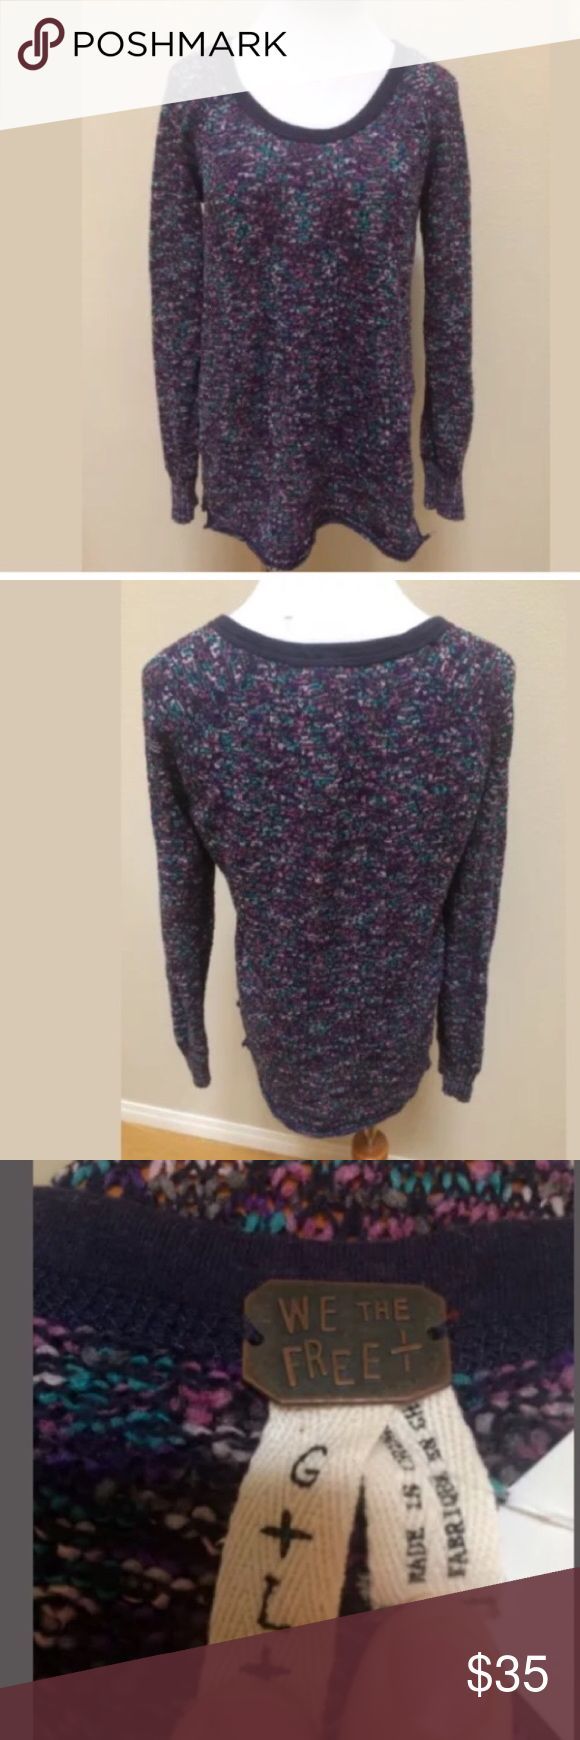 """We The Free People Textured Loose Knit Sweater We The Free Free People Blue Purple Textured Loose Knit Sweater Top Women Large.  Excellent condition! Loose knit. Clean and comes from smoke free home. Questions welcomed! Armpit to armpit: 19.5"""" across Length: 27.5"""" Free People Sweaters Crew & Scoop Necks"""